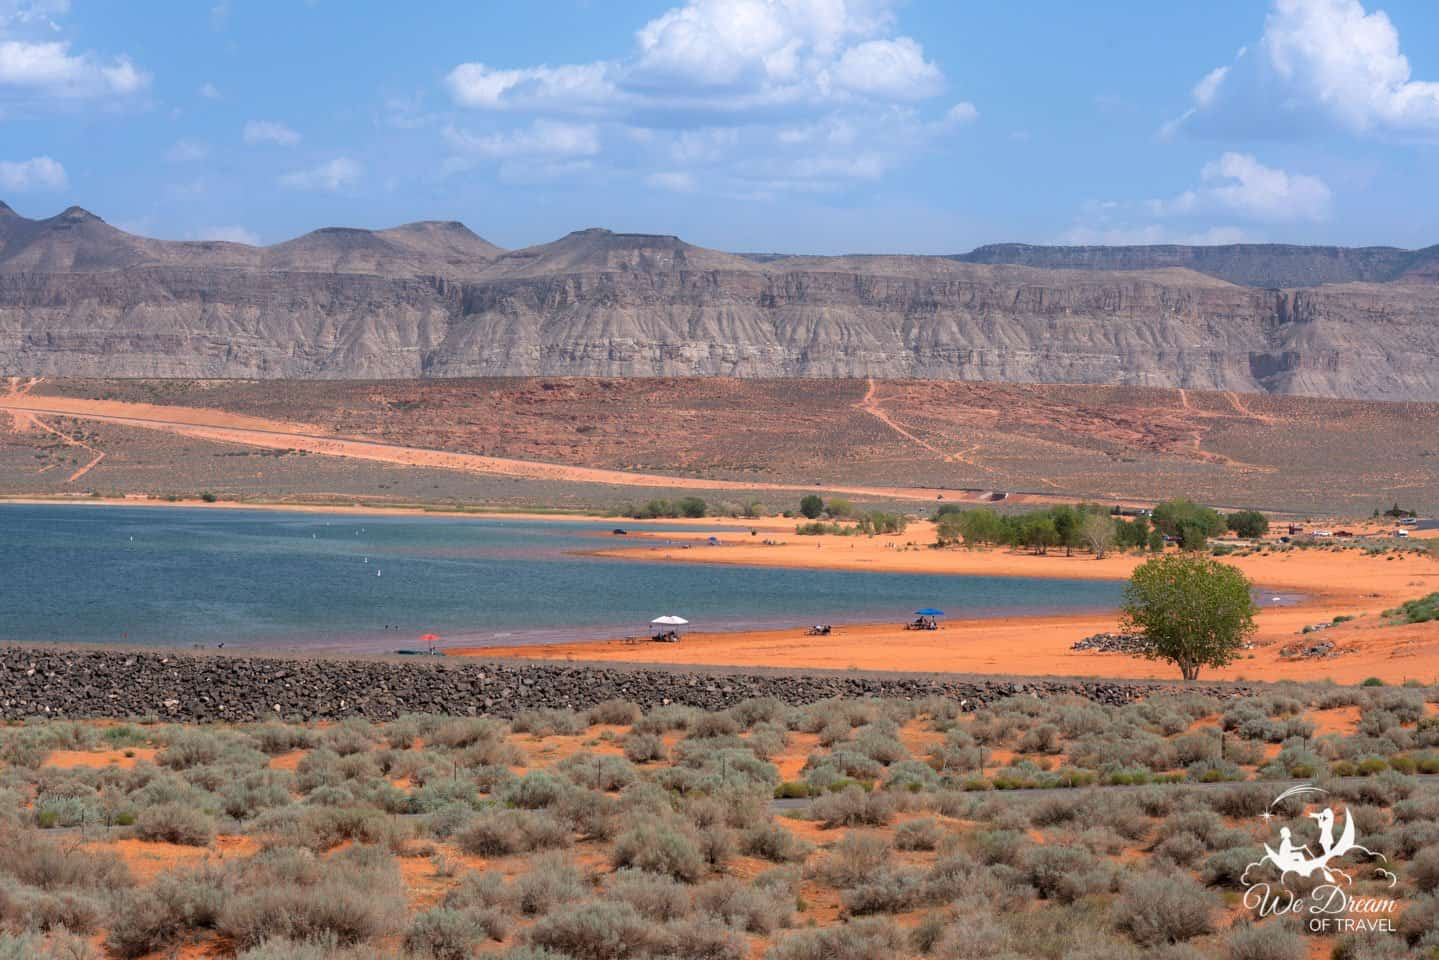 The orange sand beach at Sand Hollow State Park is a great place for families to spend the day near St George, Utah.